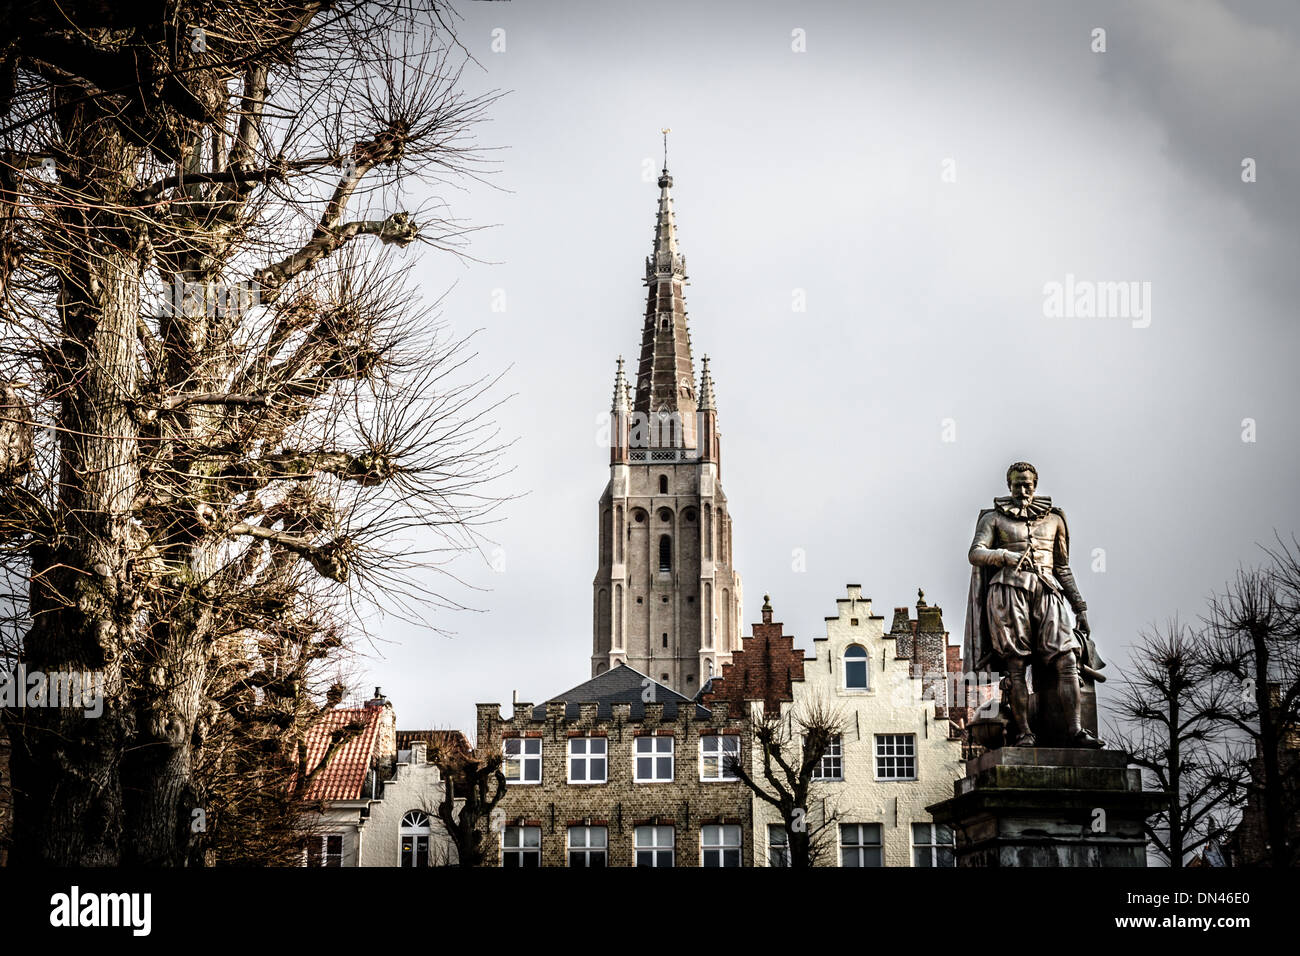 Statue of Flemish mathematician Simon Stevin in front of the Church of our Lady in medieval Bruges, Belgium - Stock Image